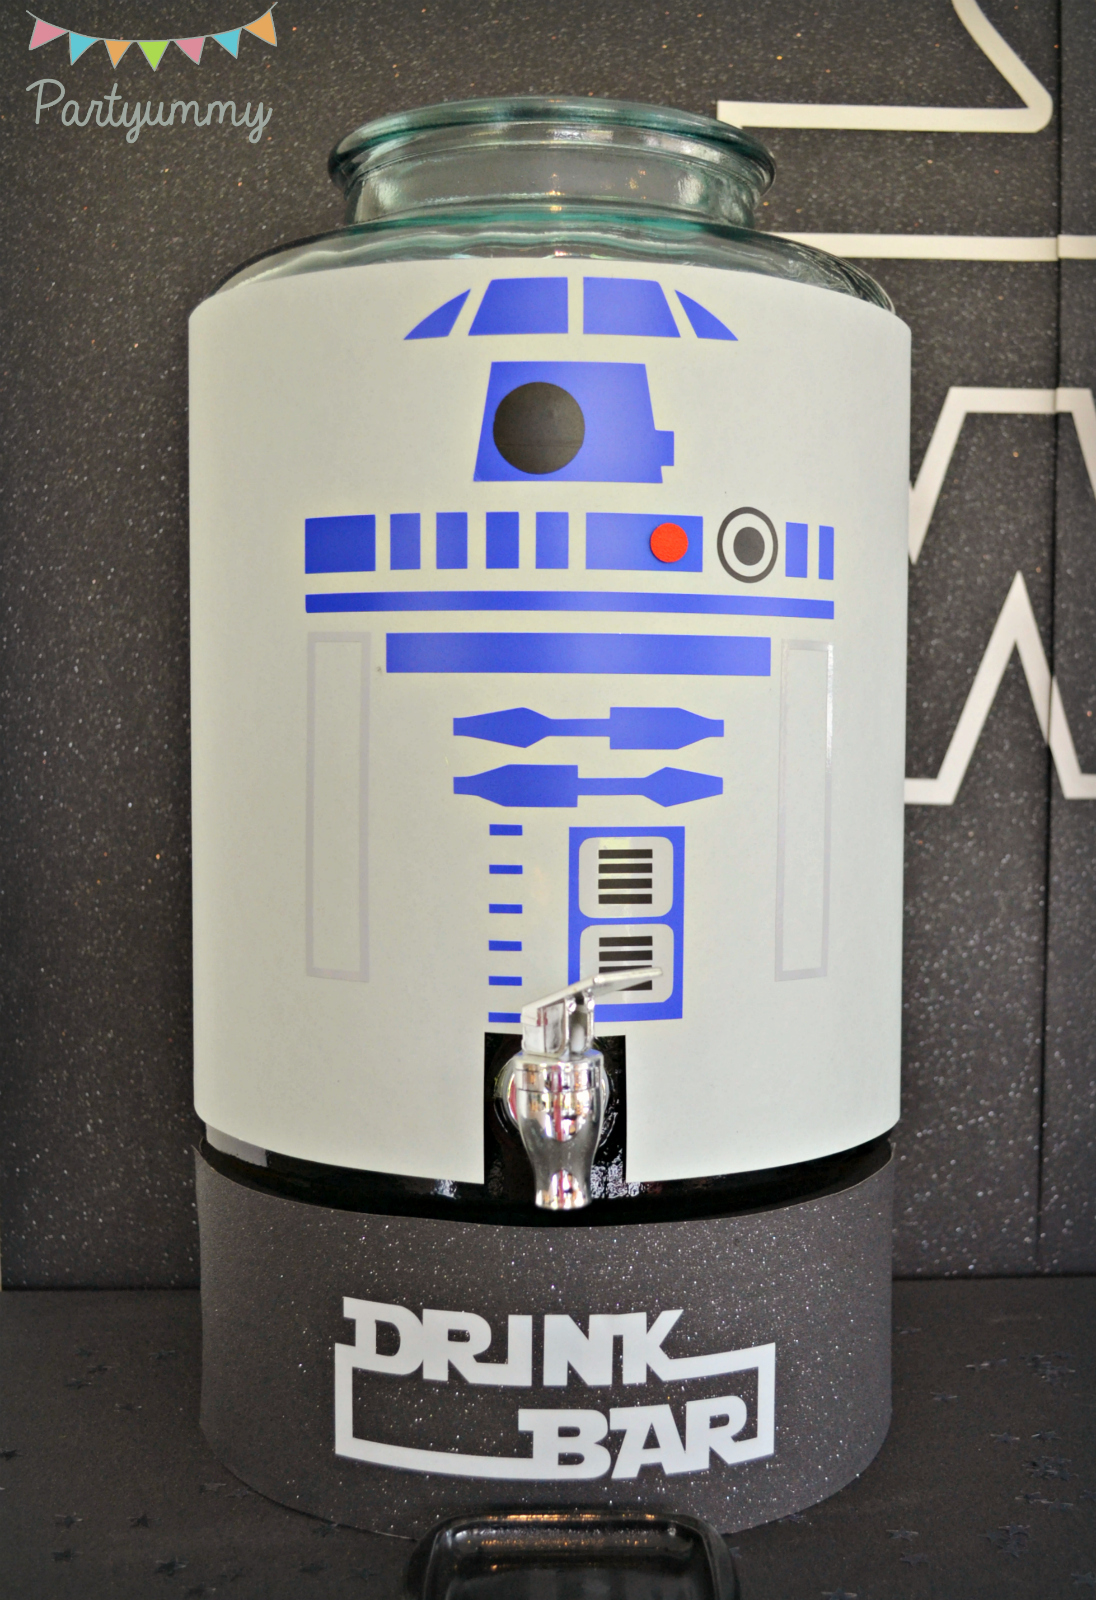 drink-bar-r2d2-star-wars-bonbonne-robinet